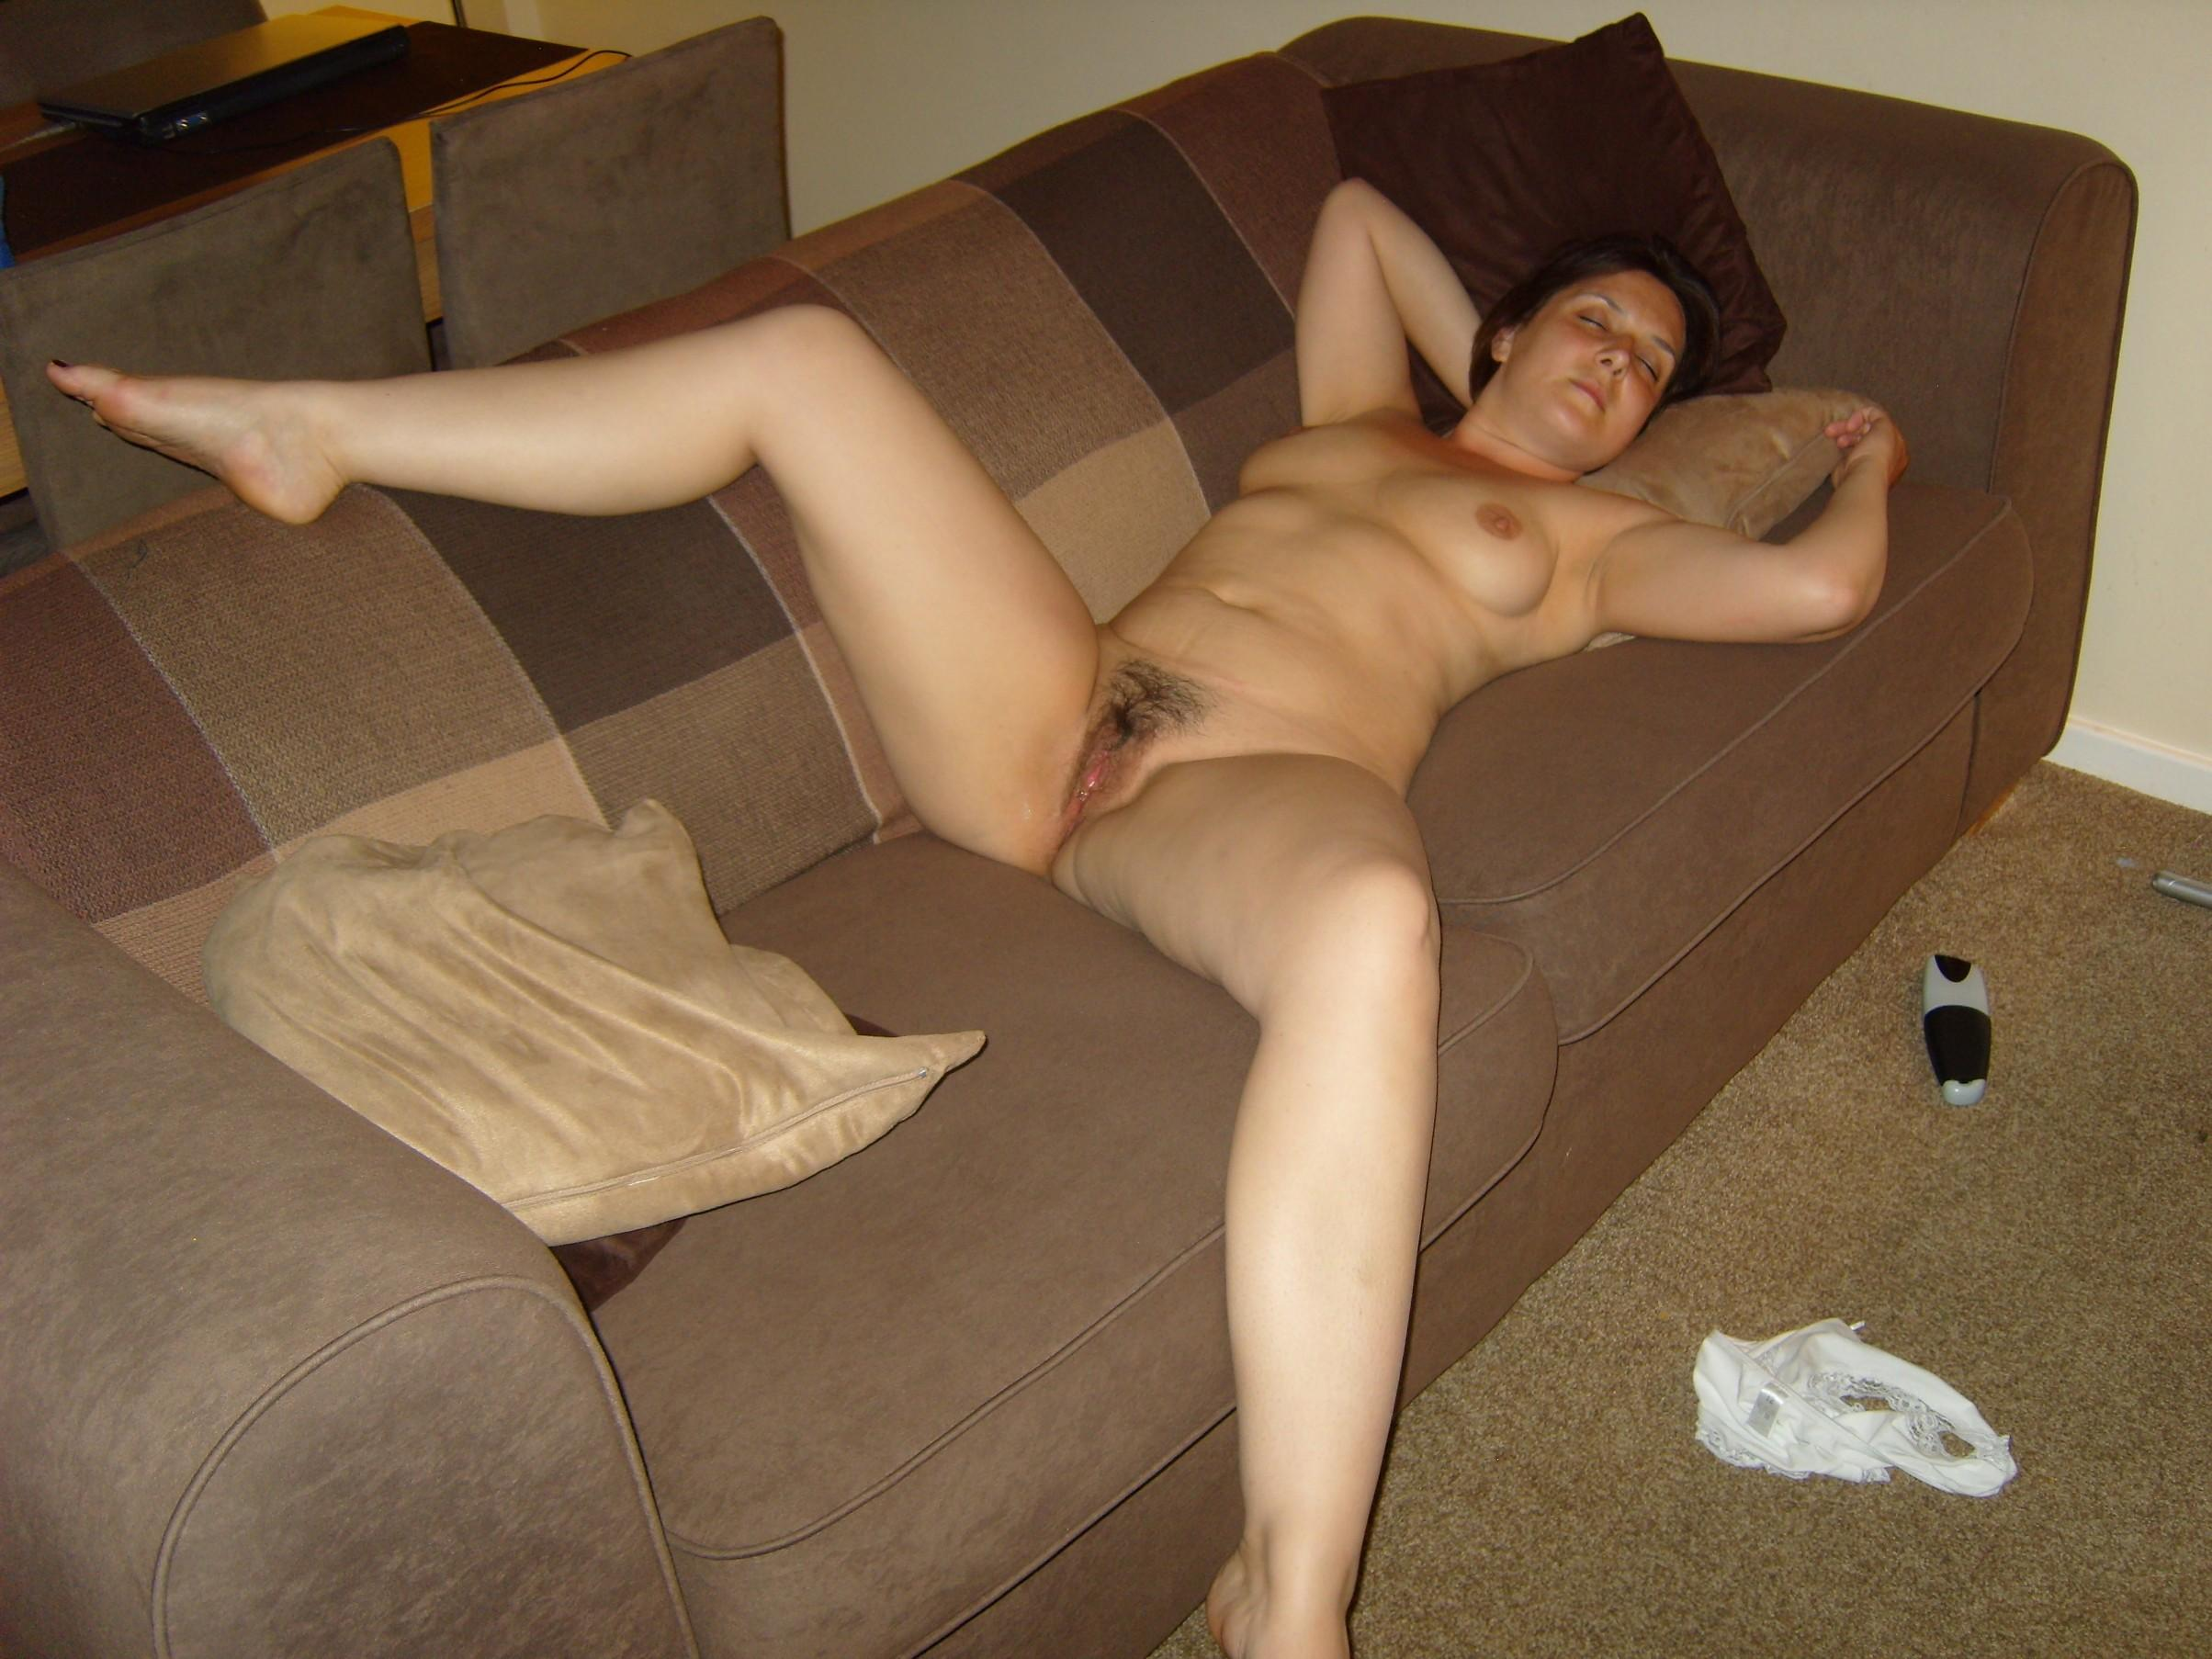 Sexy MILF spreads hairy pussy on the bed. Mature women proudly shows her beaver for nude picture. Amateur wife getting nude on her bed